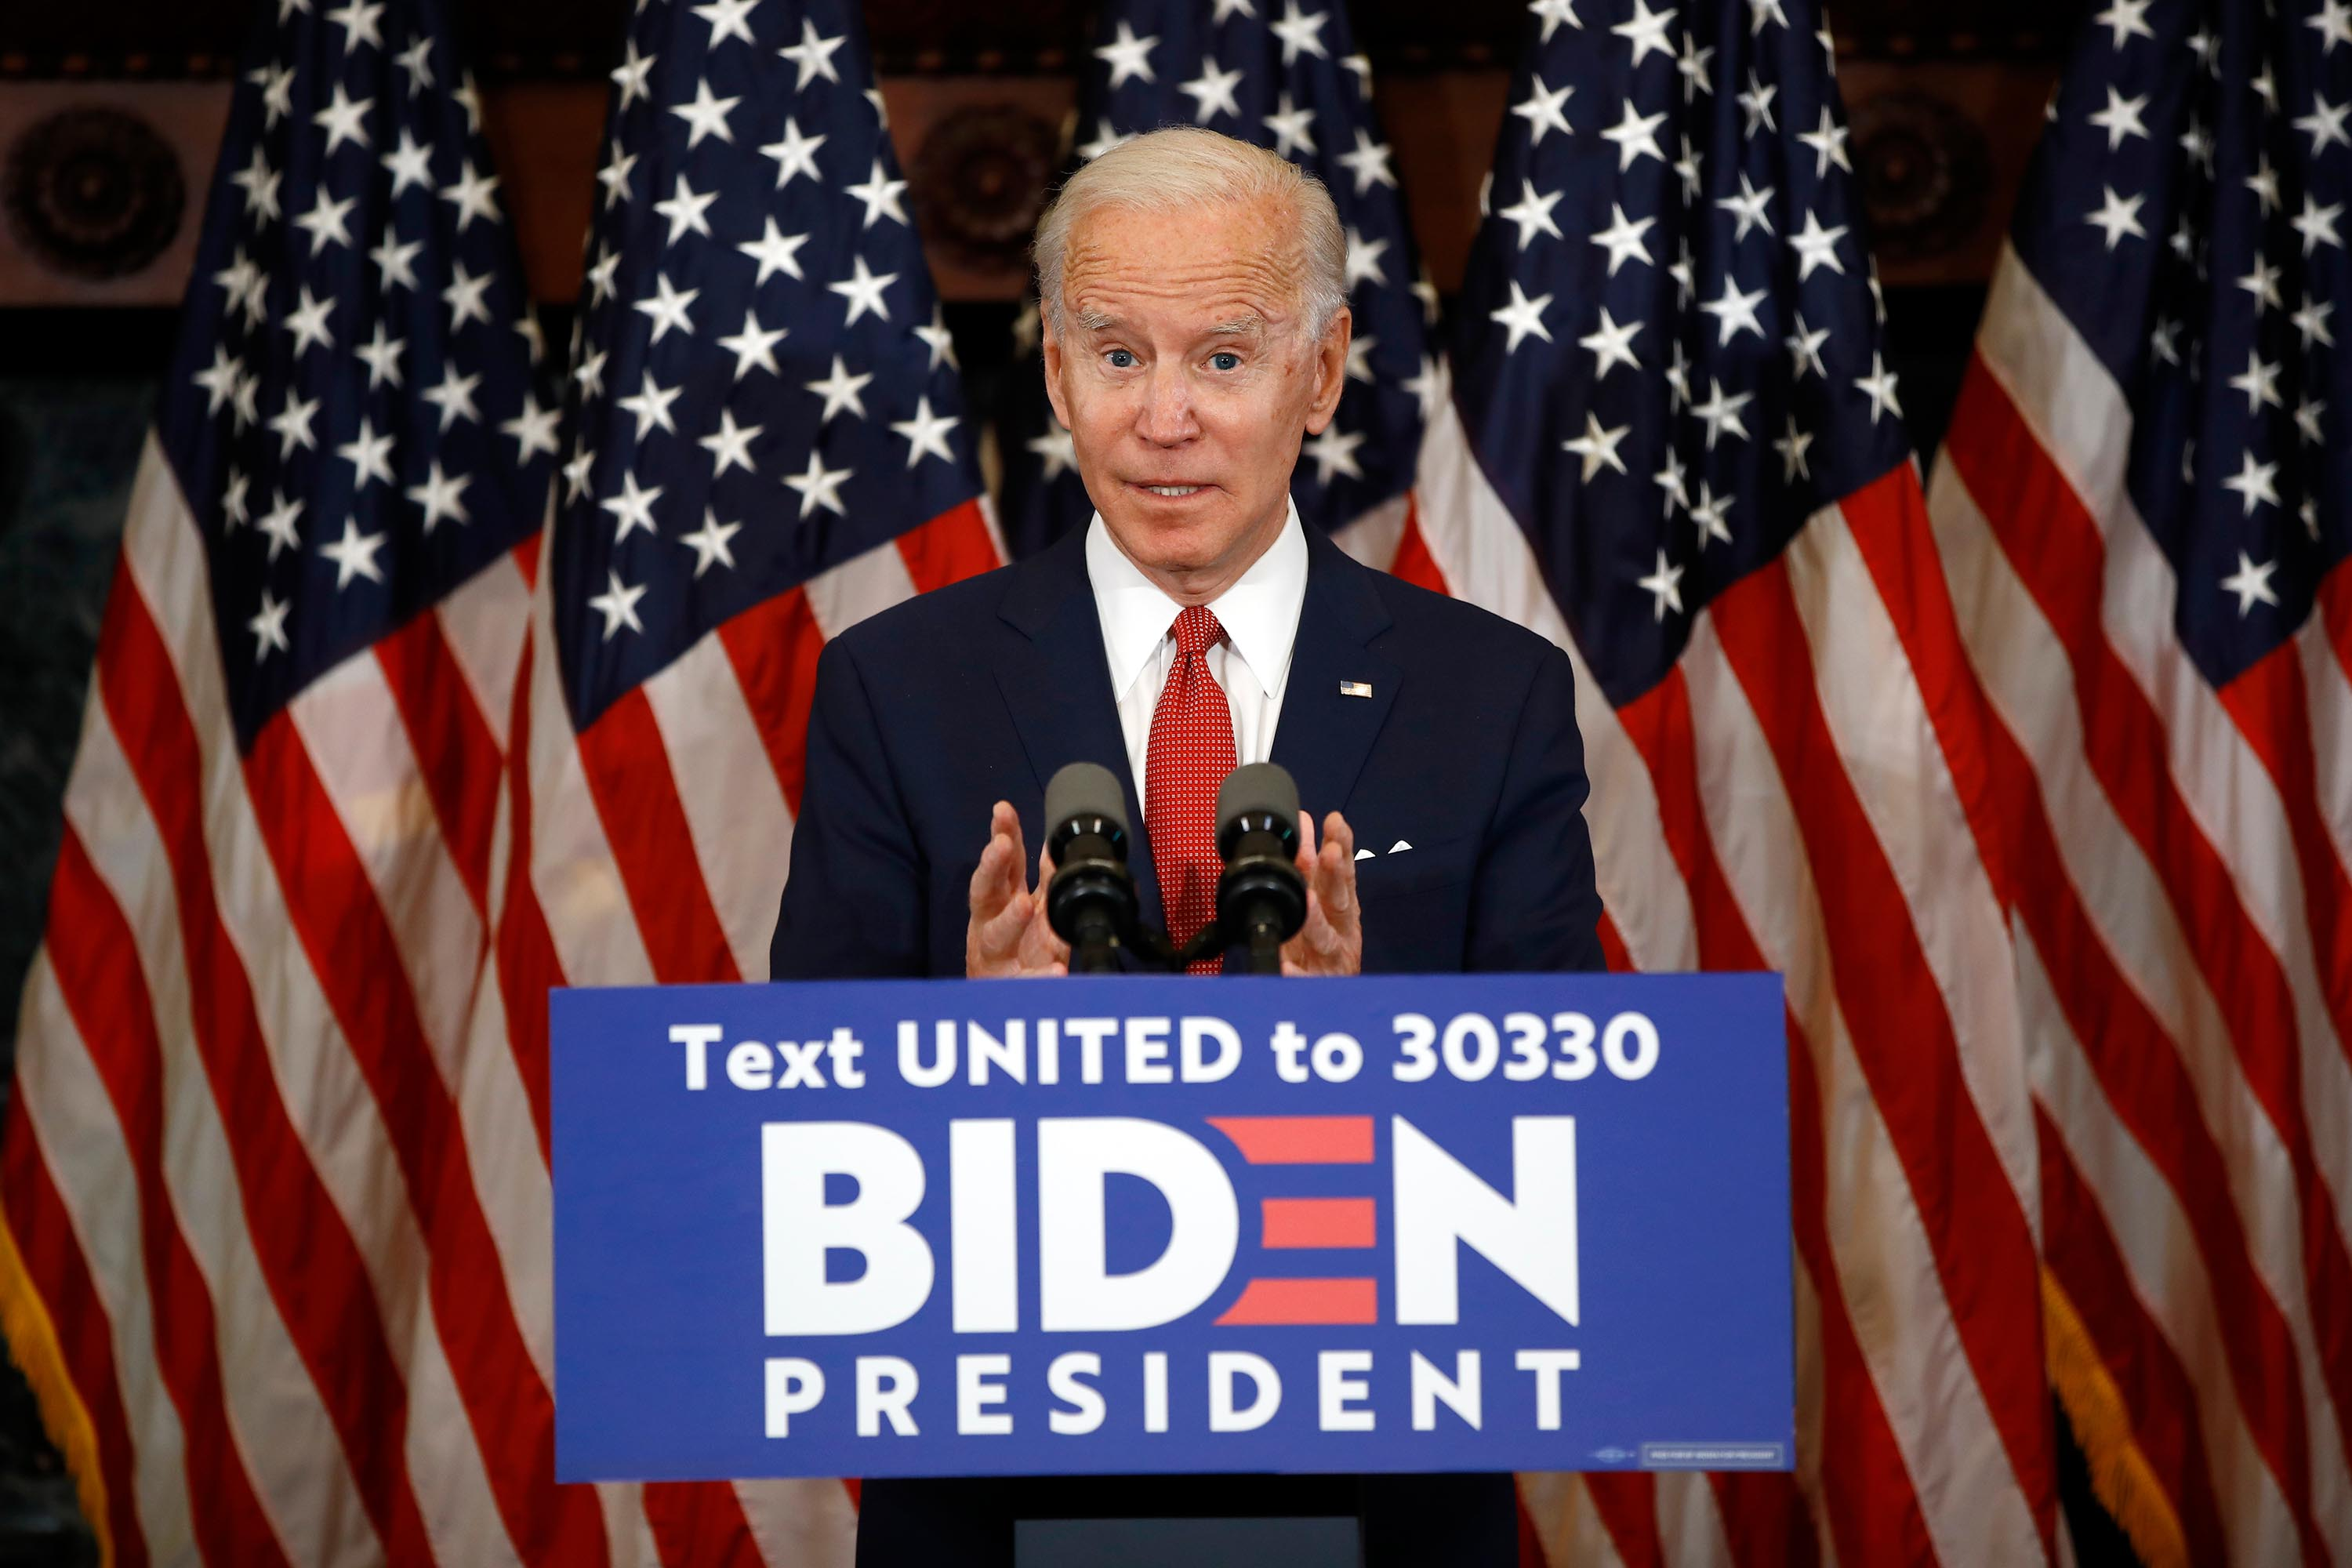 Plans being discussed for Joe Biden to attend George Floyd's funeral